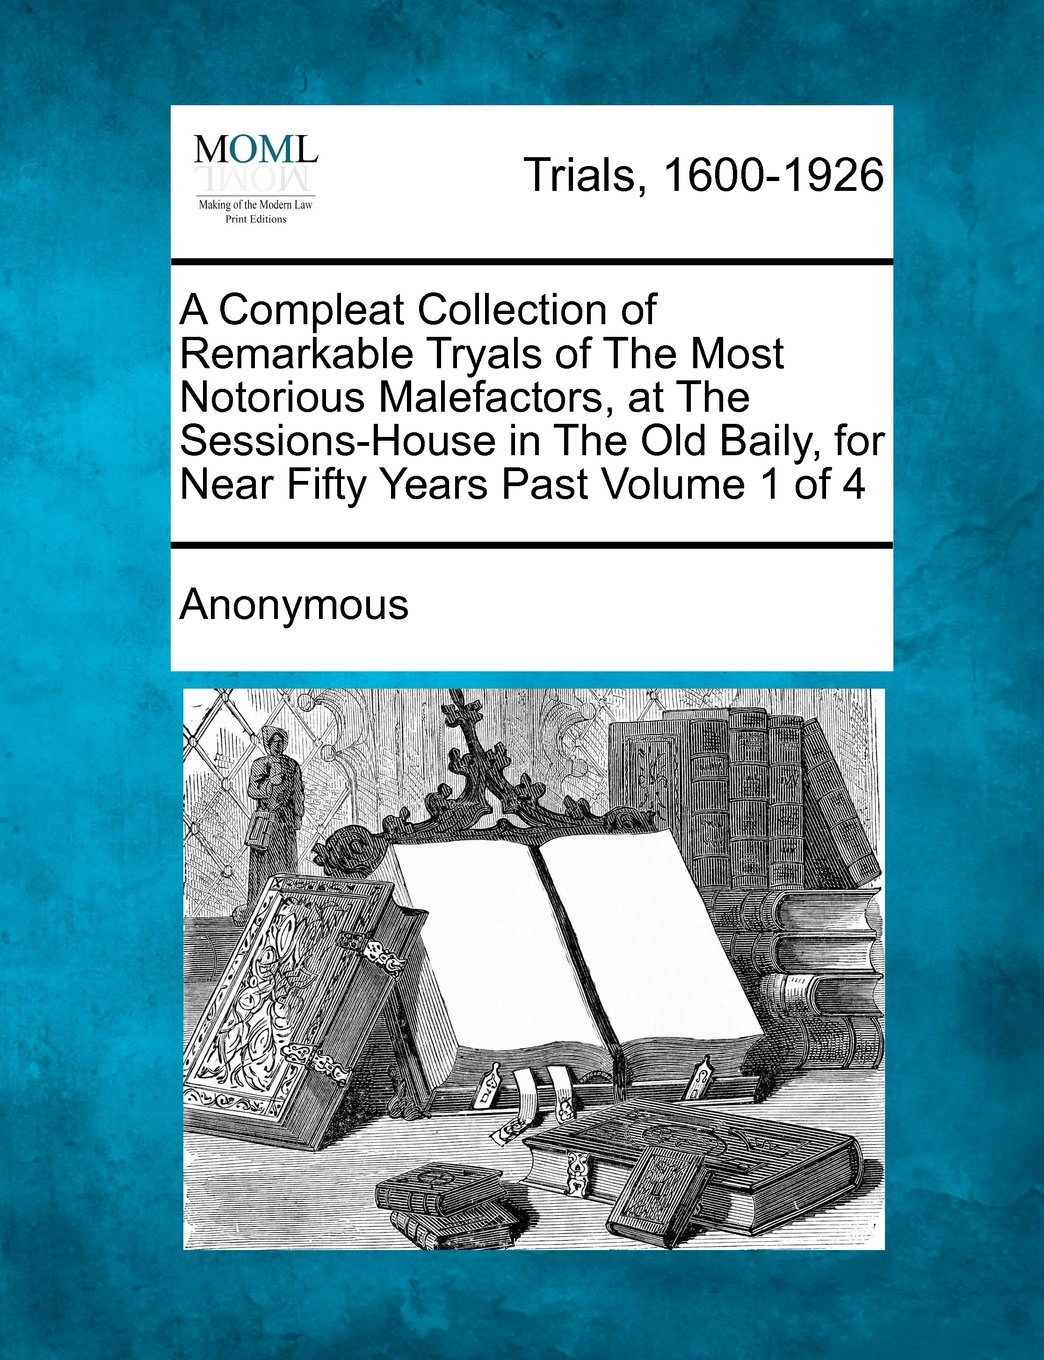 Read Online A Compleat Collection of Remarkable Tryals of The Most Notorious Malefactors, at The Sessions-House in The Old Baily, for Near Fifty Years Past Volume 1 of 4 ebook